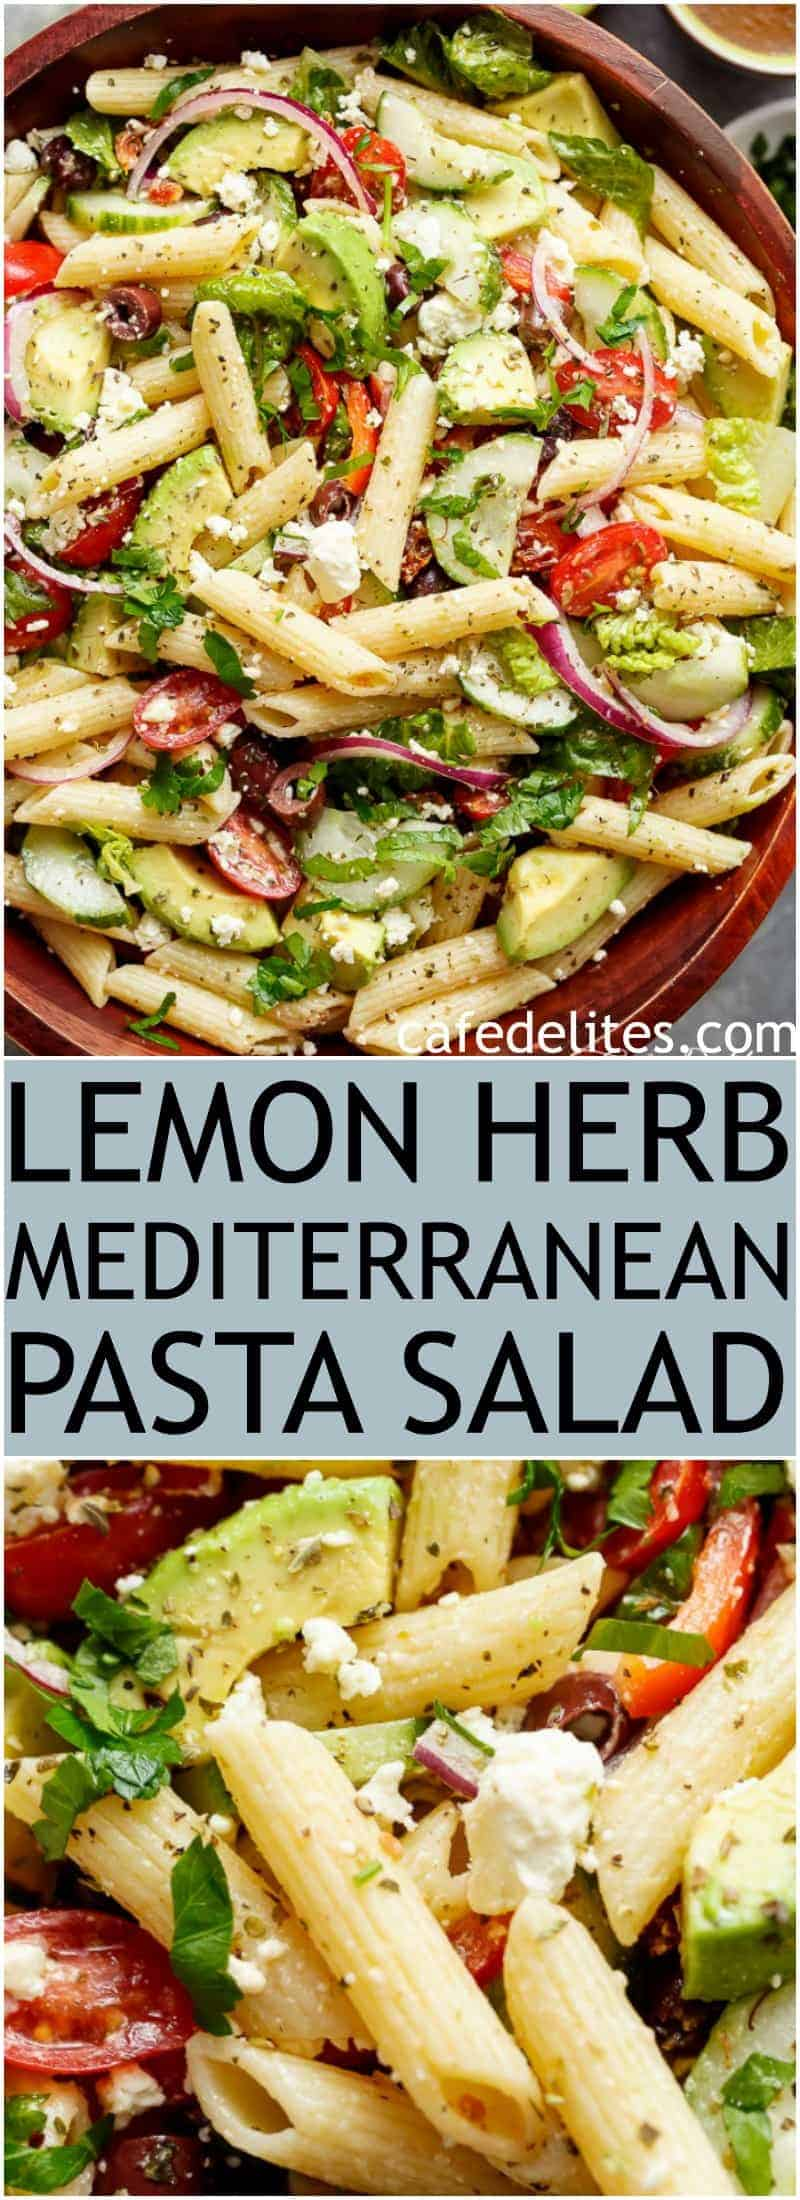 Lemon Herb Mediterranean Pasta Salad is loaded with so many Mediterranean salad ingredients, and drizzled an incredible Lemon Herb dressing! | https://cafedelites.com